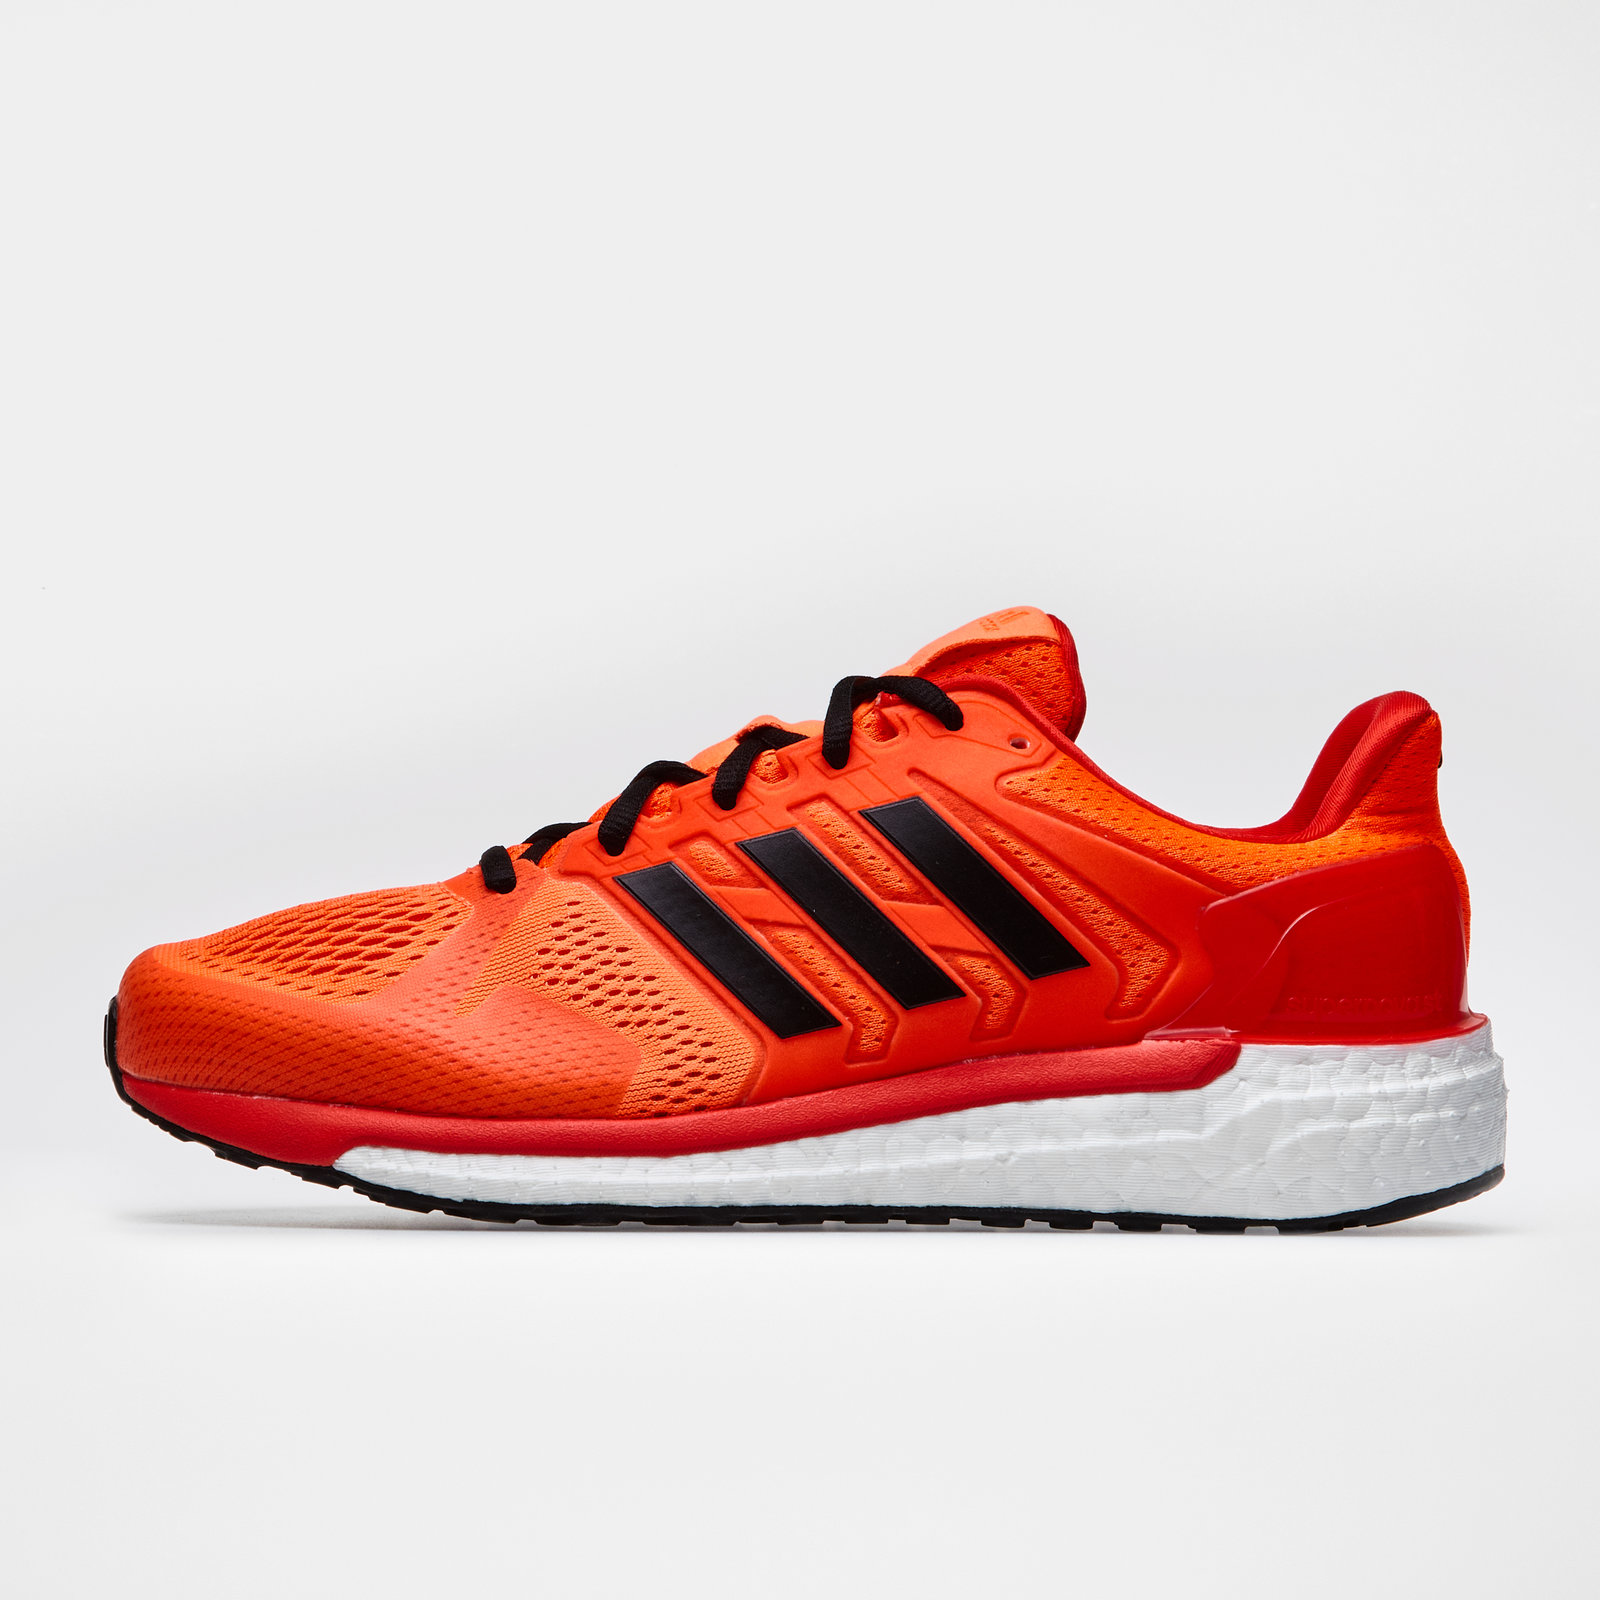 genuine shoes outlet boutique undefeated x Details about adidas Mens Supernova ST Running Shoes Jogging Footwear  Sports Trainers Orange